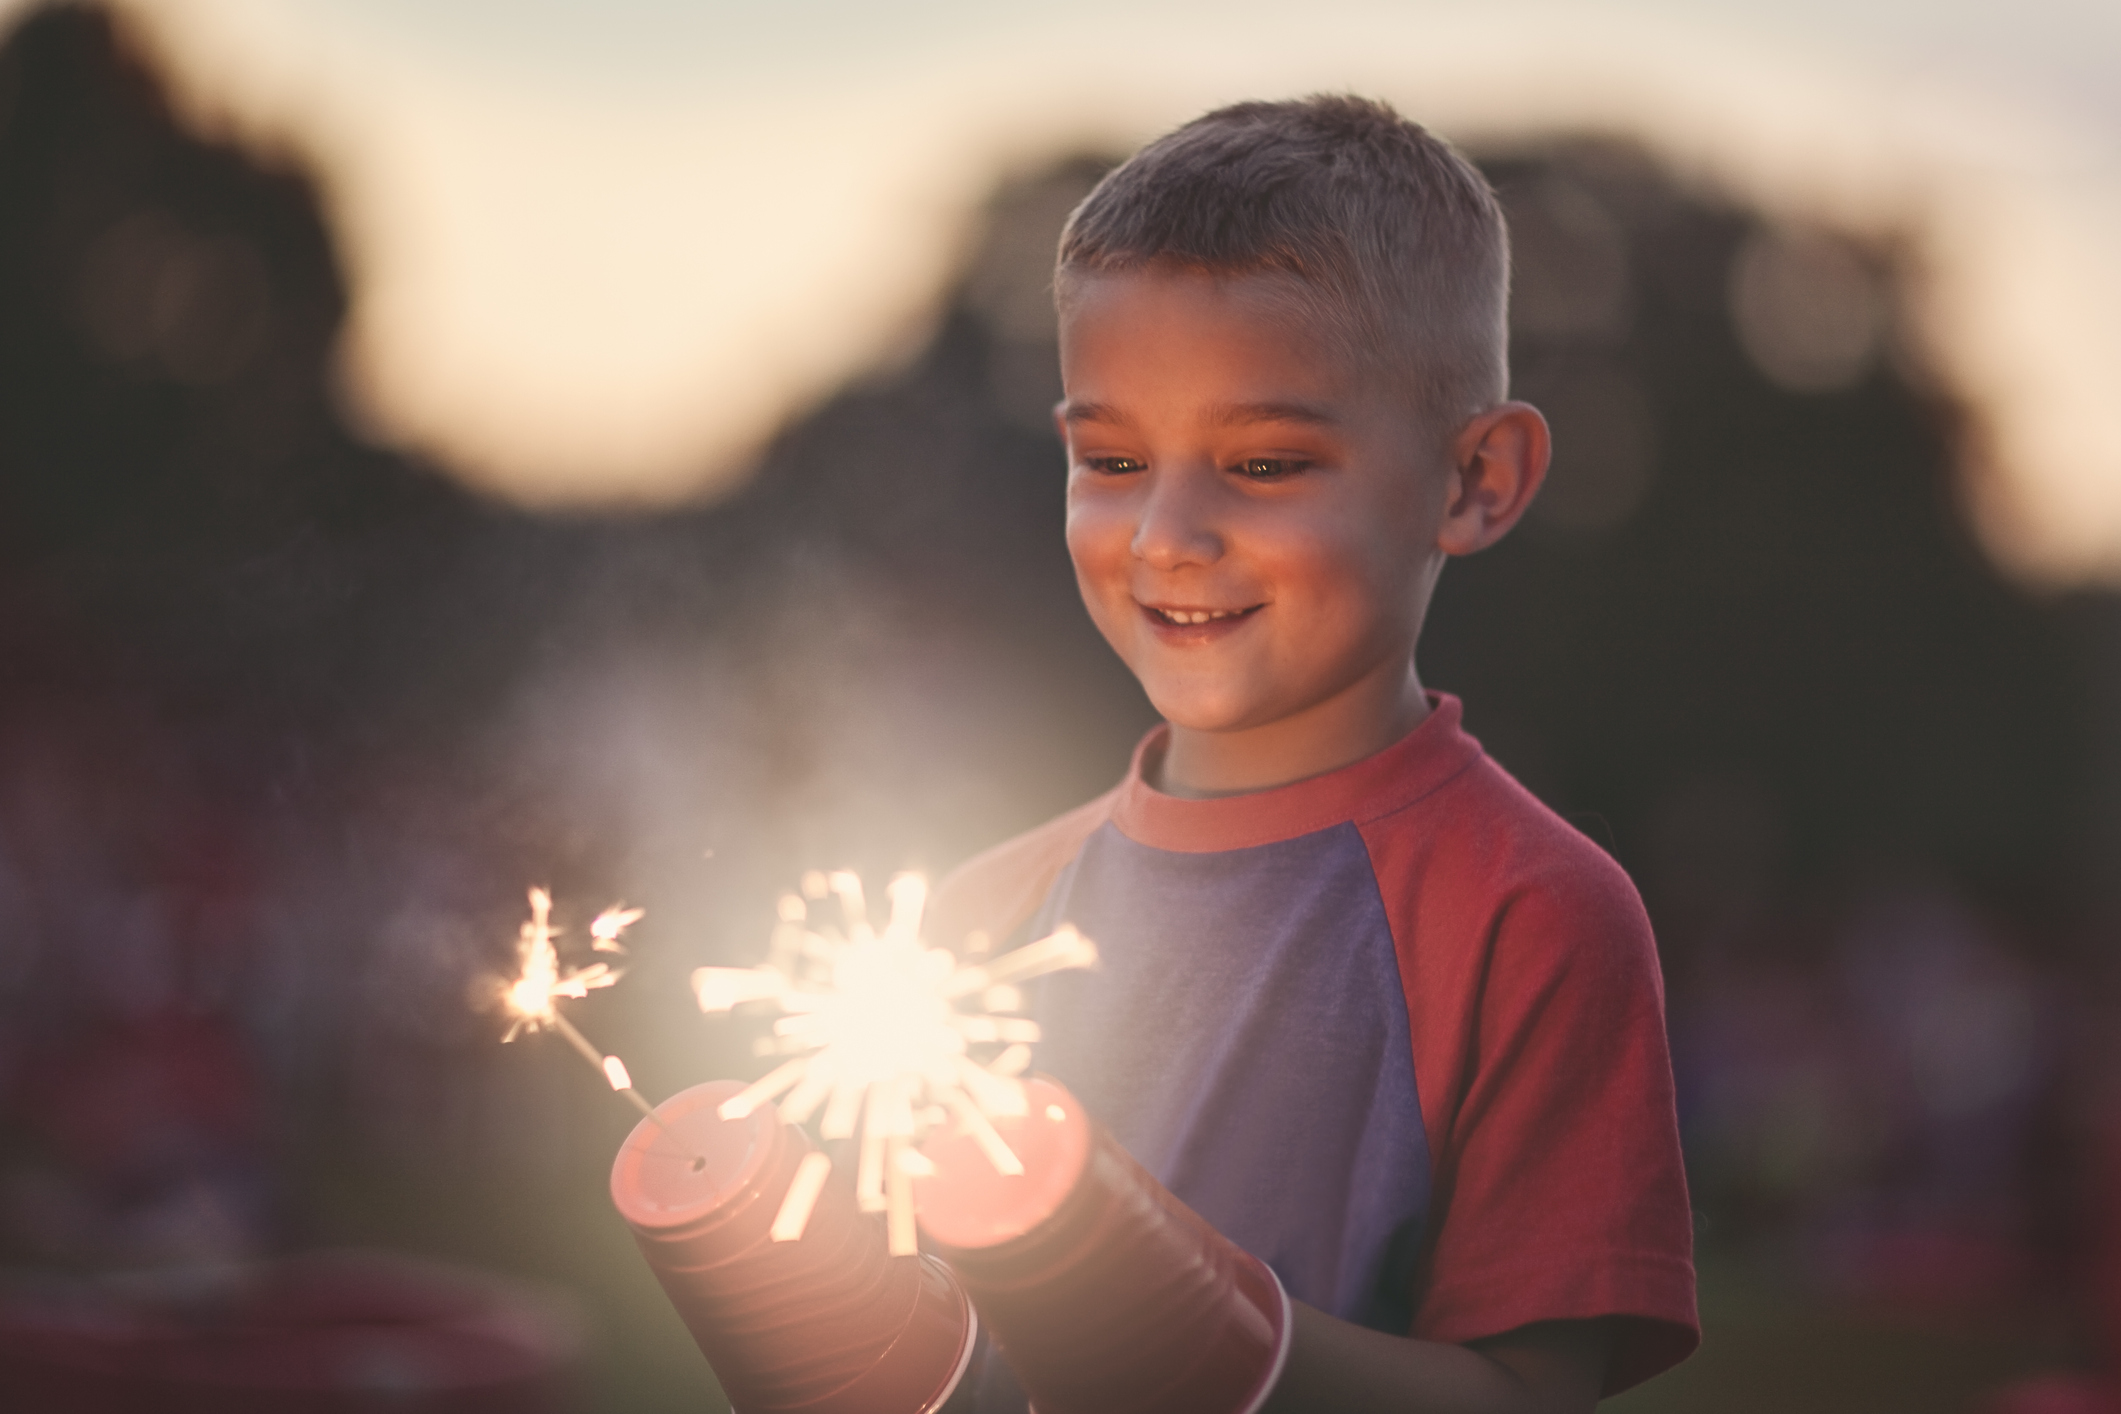 Cute, little boy holding two Fourth of July sparklers at dusk.